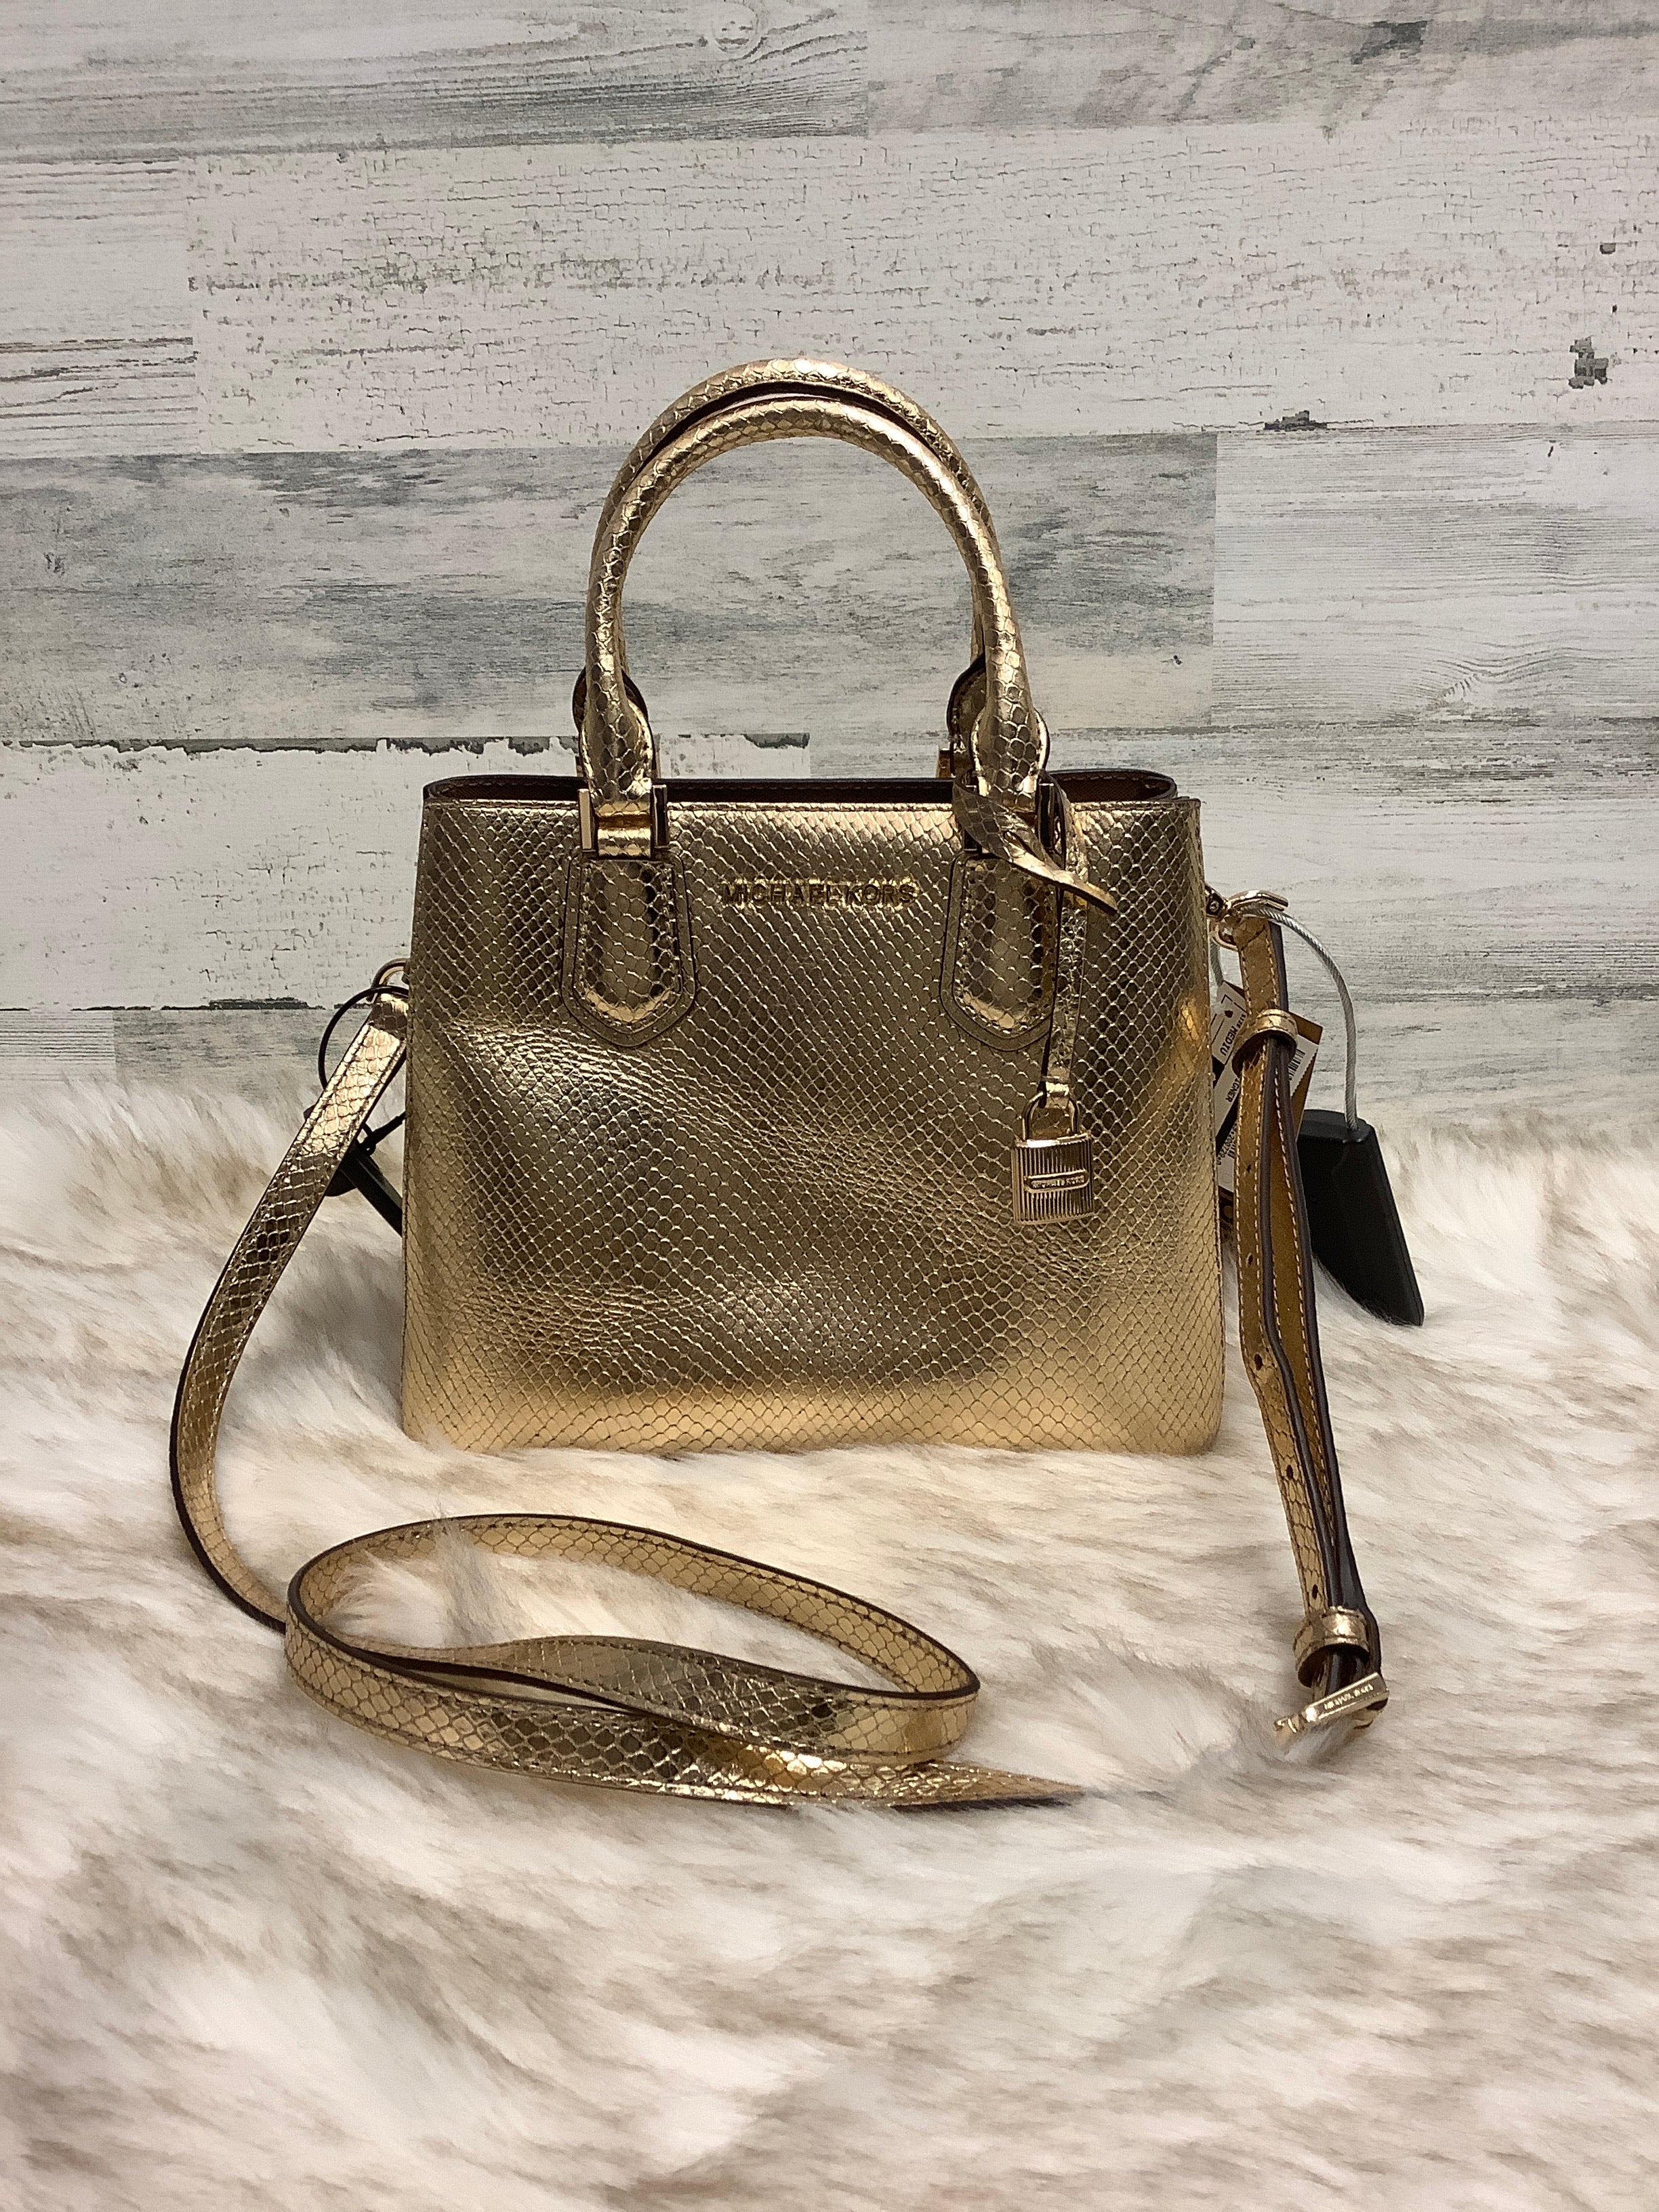 Primary Photo - BRAND: MICHAEL KORS <BR>STYLE: HANDBAG DESIGNER <BR>COLOR: GOLD <BR>SIZE: MEDIUM <BR>OTHER INFO: AS IS <BR>SKU: 153-153173-1461